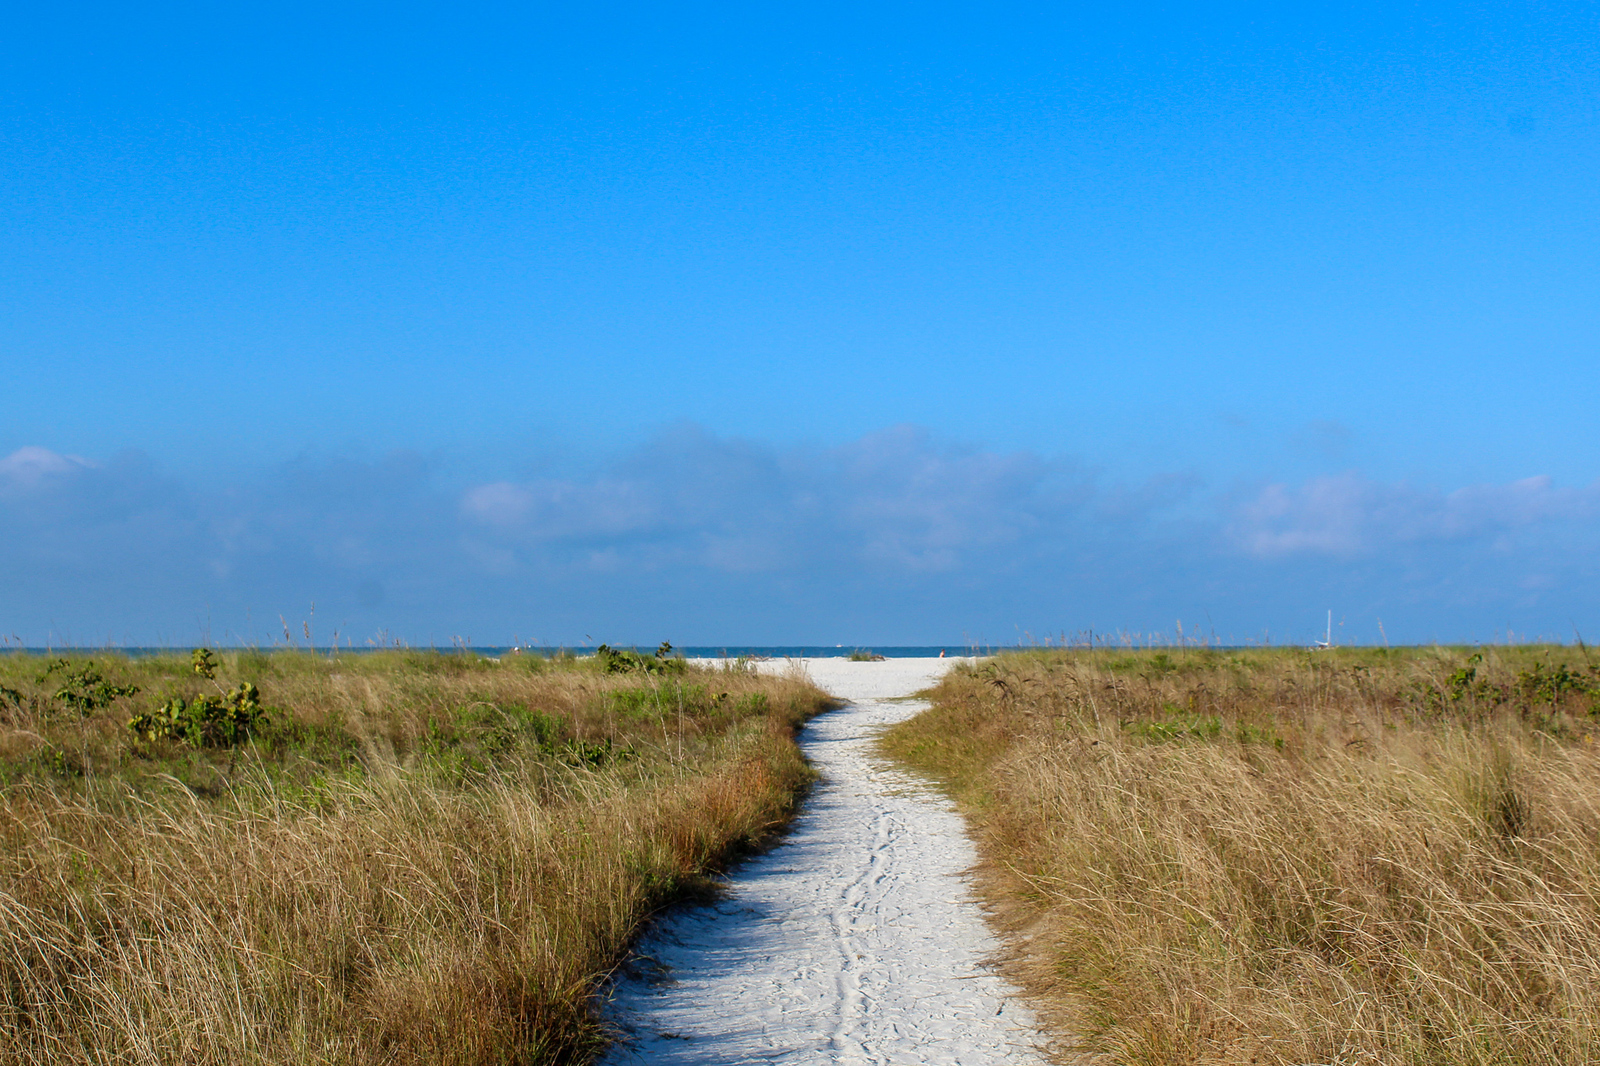 don't forget walking on the beach as one of the best things to do in marco island